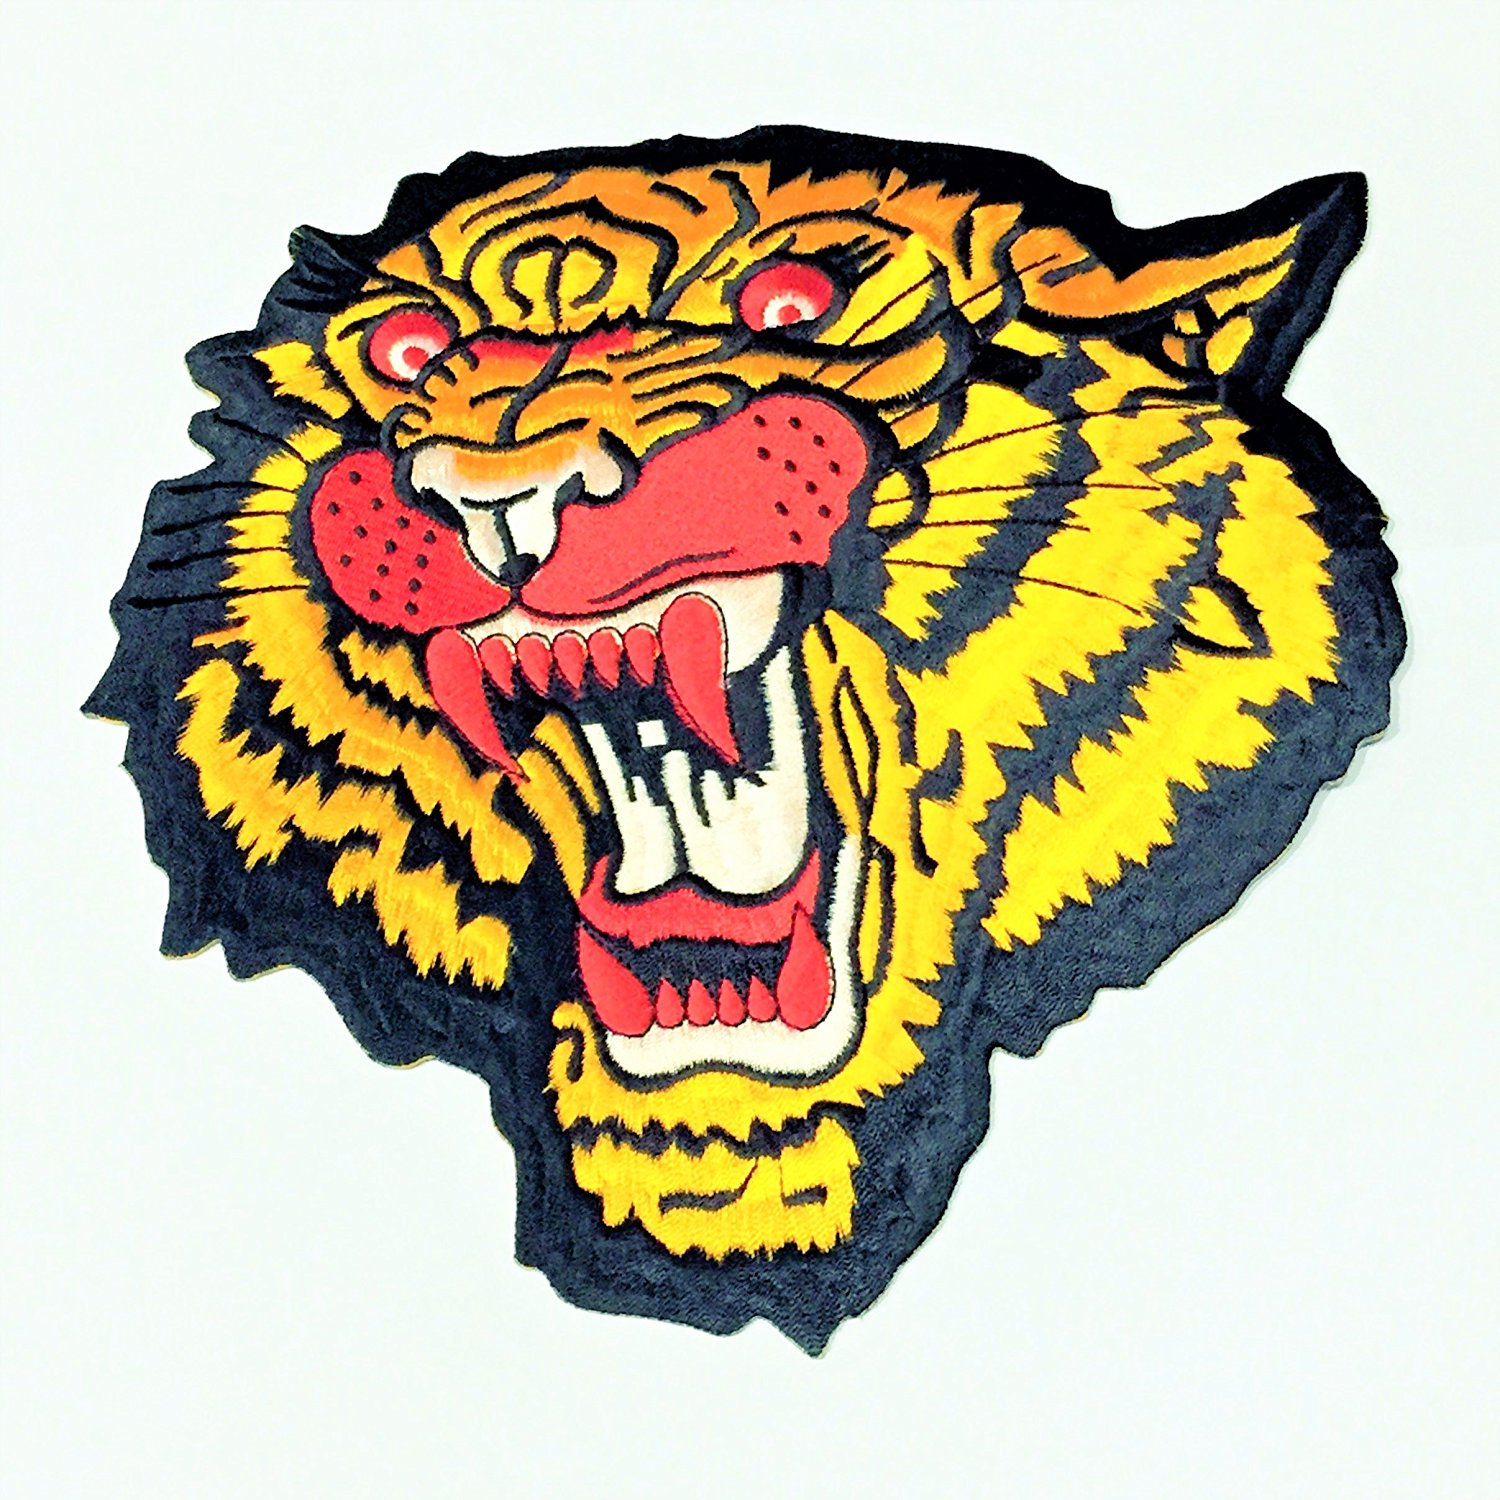 37a4f0ea6e8cf Back Patch Tiger Head Large Motorcycle Biker MC Racing Bengal Tigris Iron  On Wild Animals Punk Metal Embroidered Patches Size 8 x 8 Inches For Jackets  Vests ...